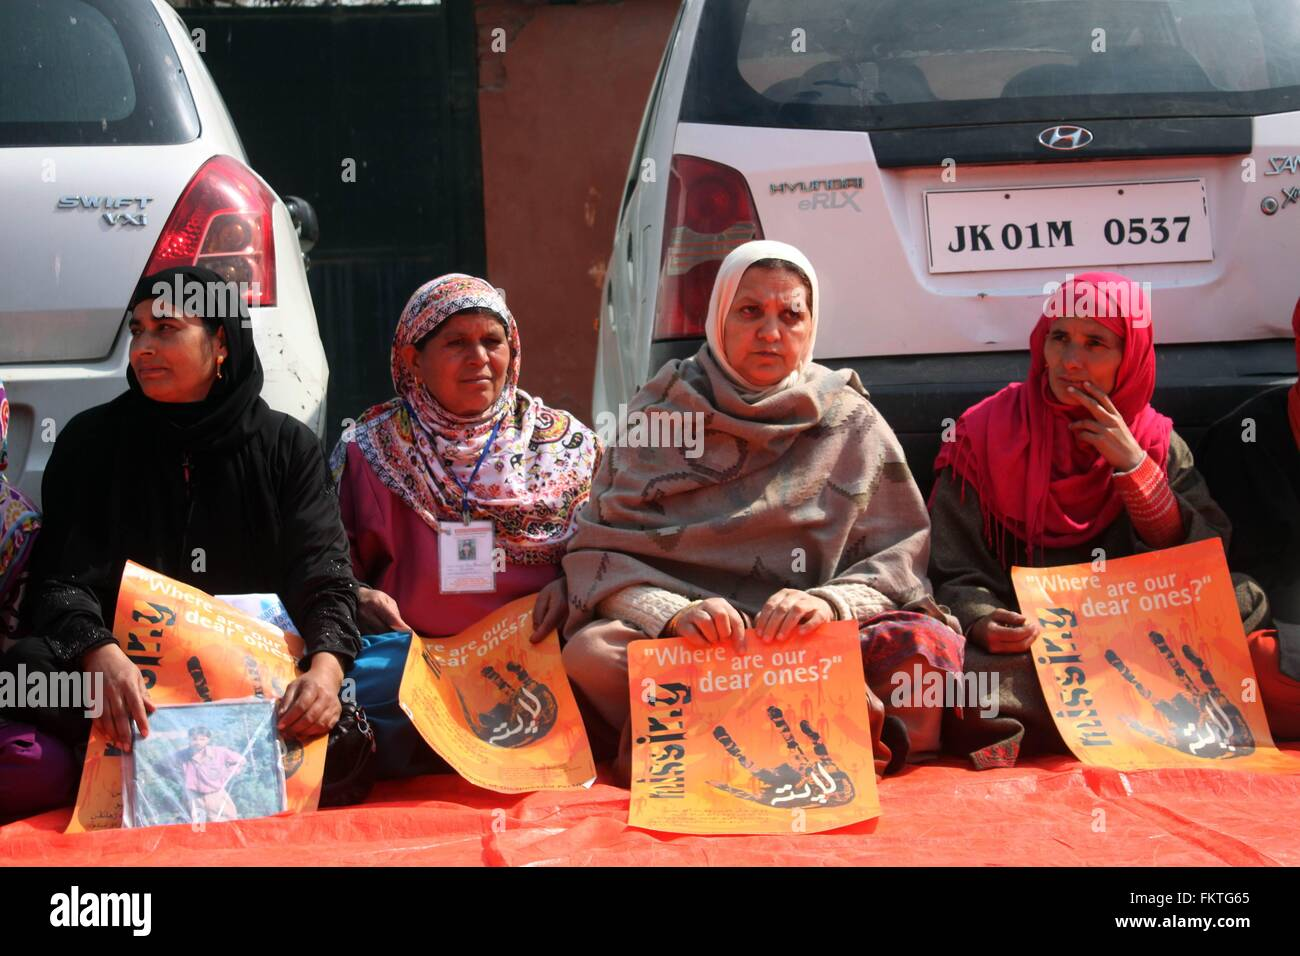 Srinagar, Kashmir. 10th Mar, 2016. Relatives of missing Kashmiri Muslims hold photographs and posters at a sit-in - Stock Image